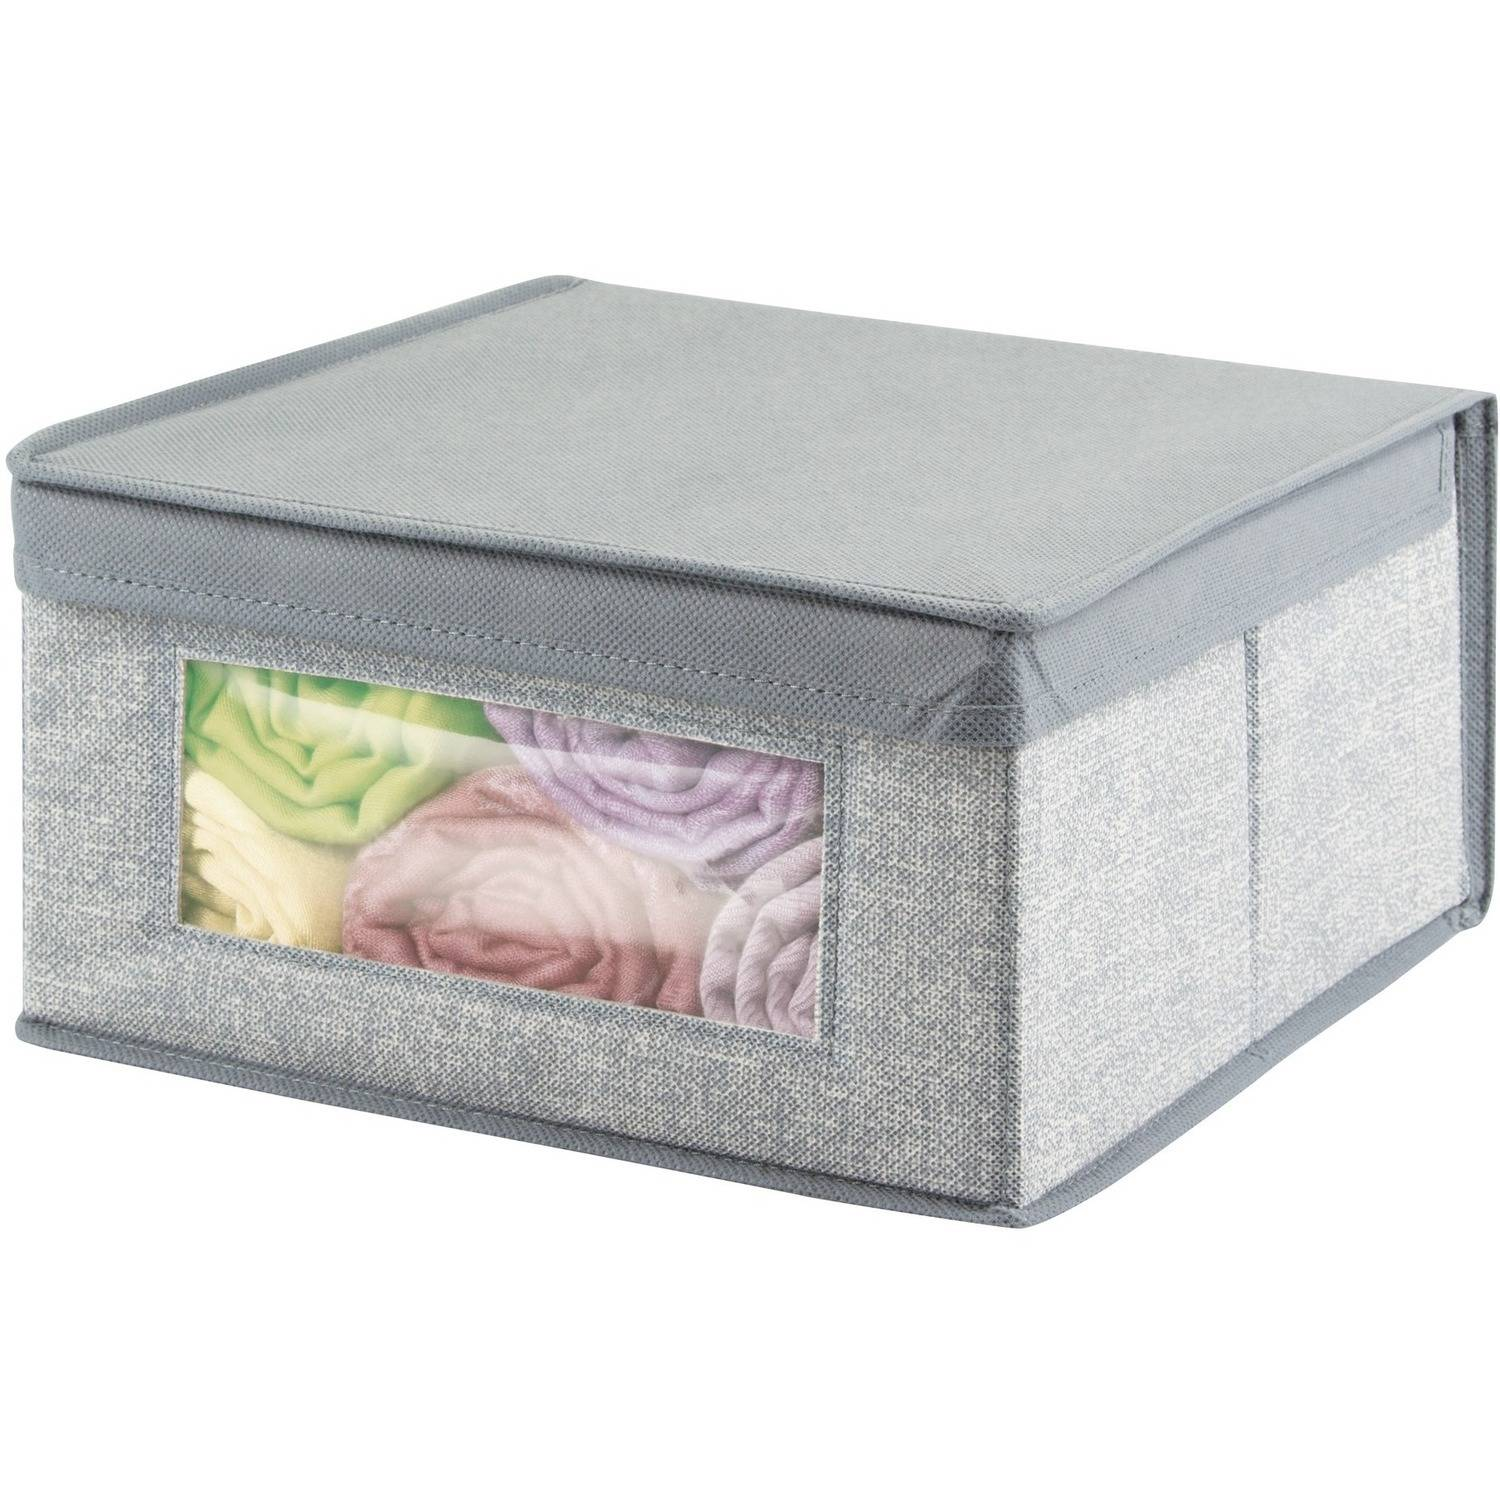 InterDesign Aldo Fabric Storage Box Various Sizes Grey  sc 1 st  Walmart.com : storage box sizes  - Aquiesqueretaro.Com